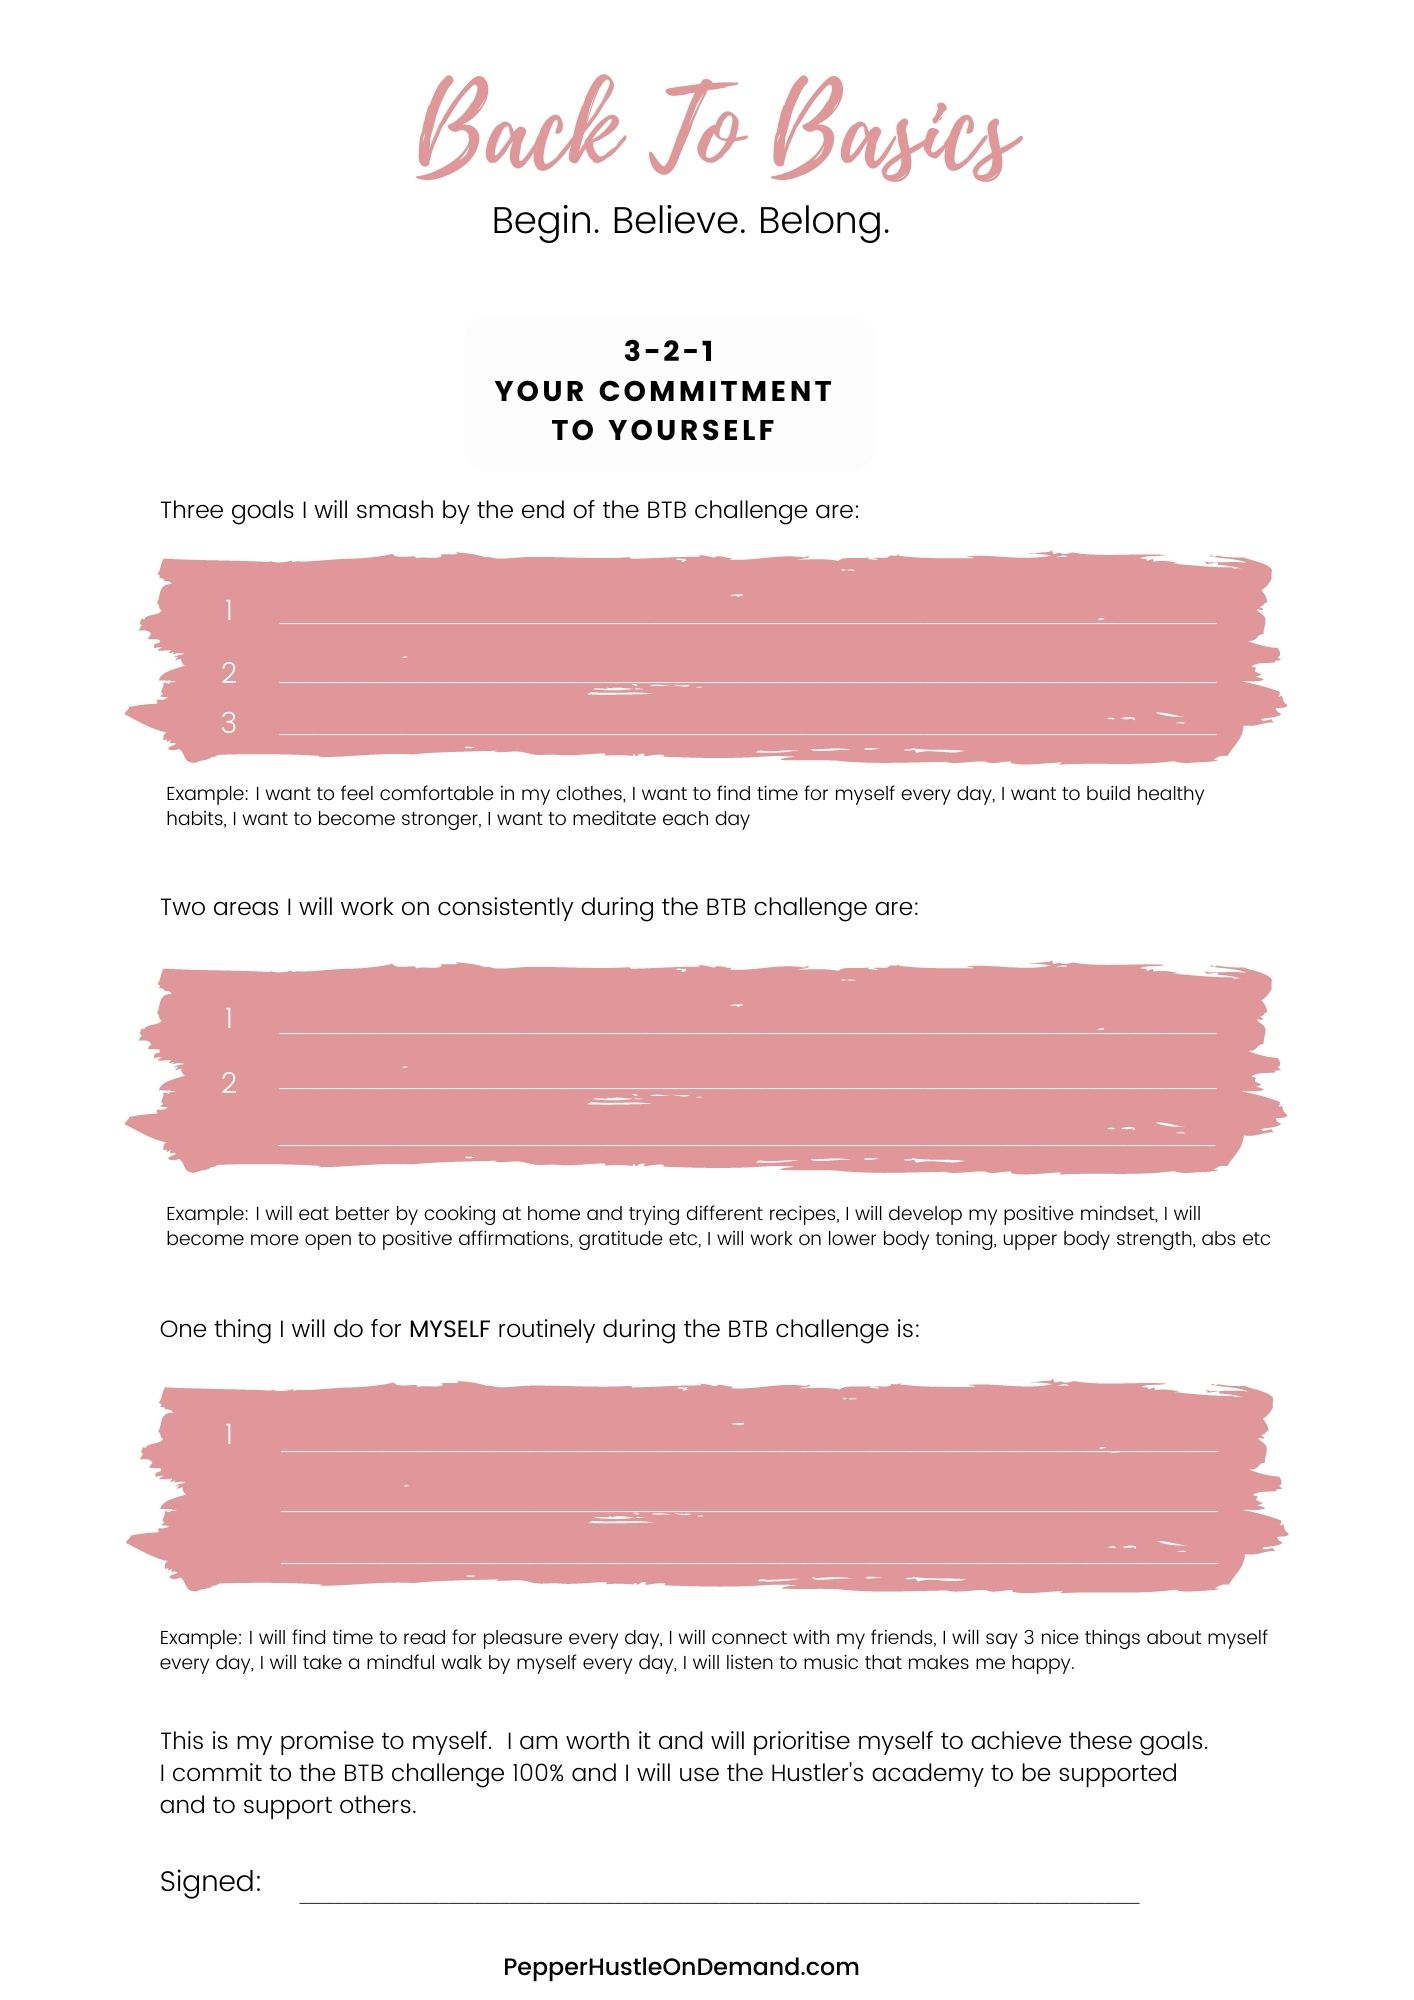 Back To Basics Goal Setting Worksheet